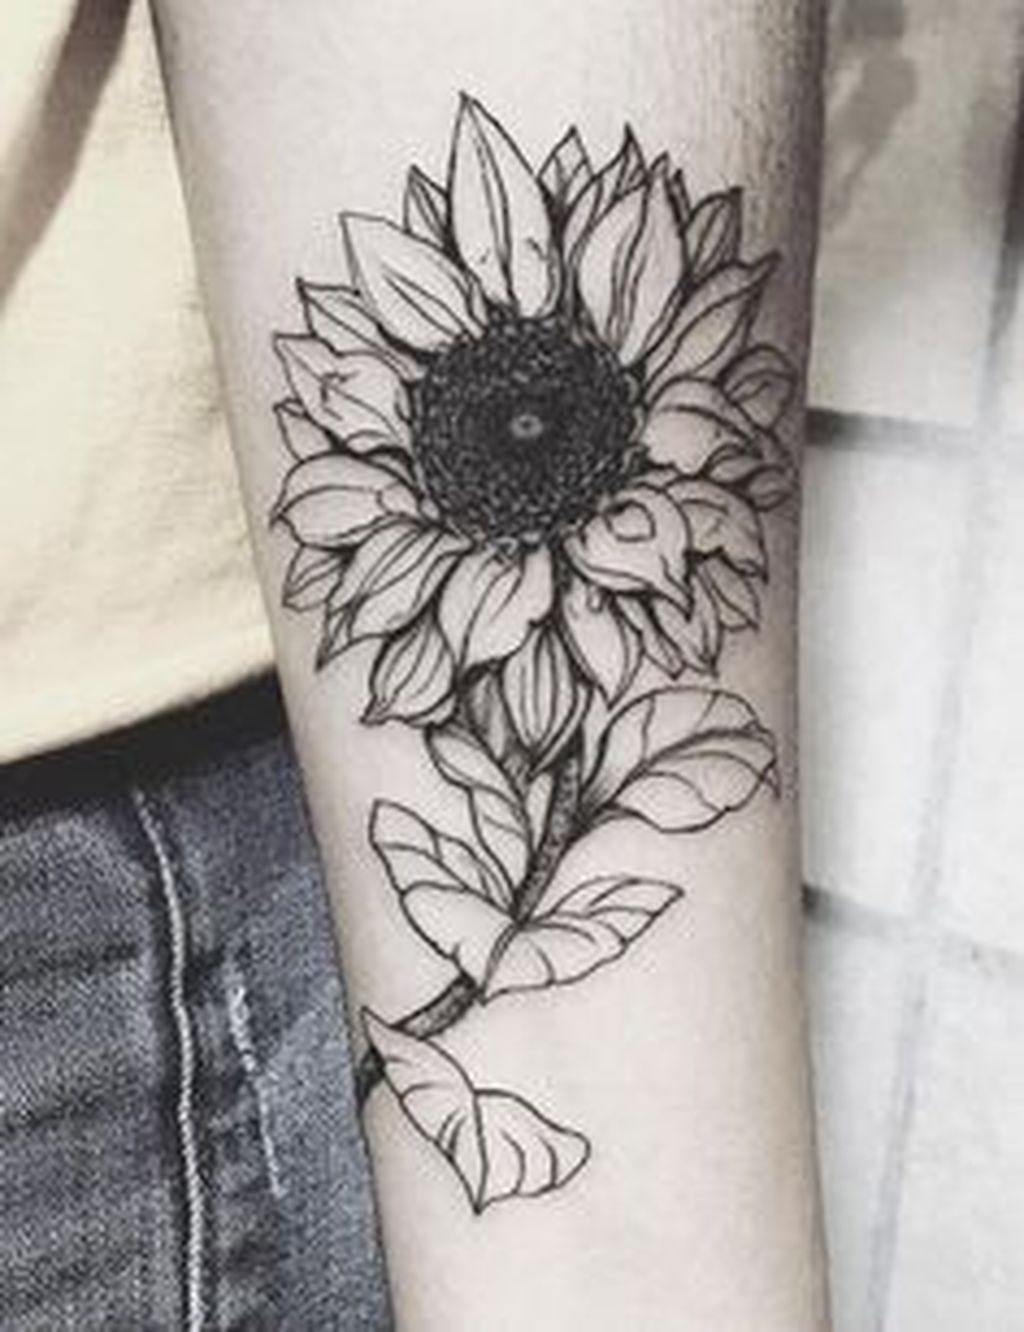 Pin By Julies Tattoos On Tattoos Pinterest Tattoos Sunflower